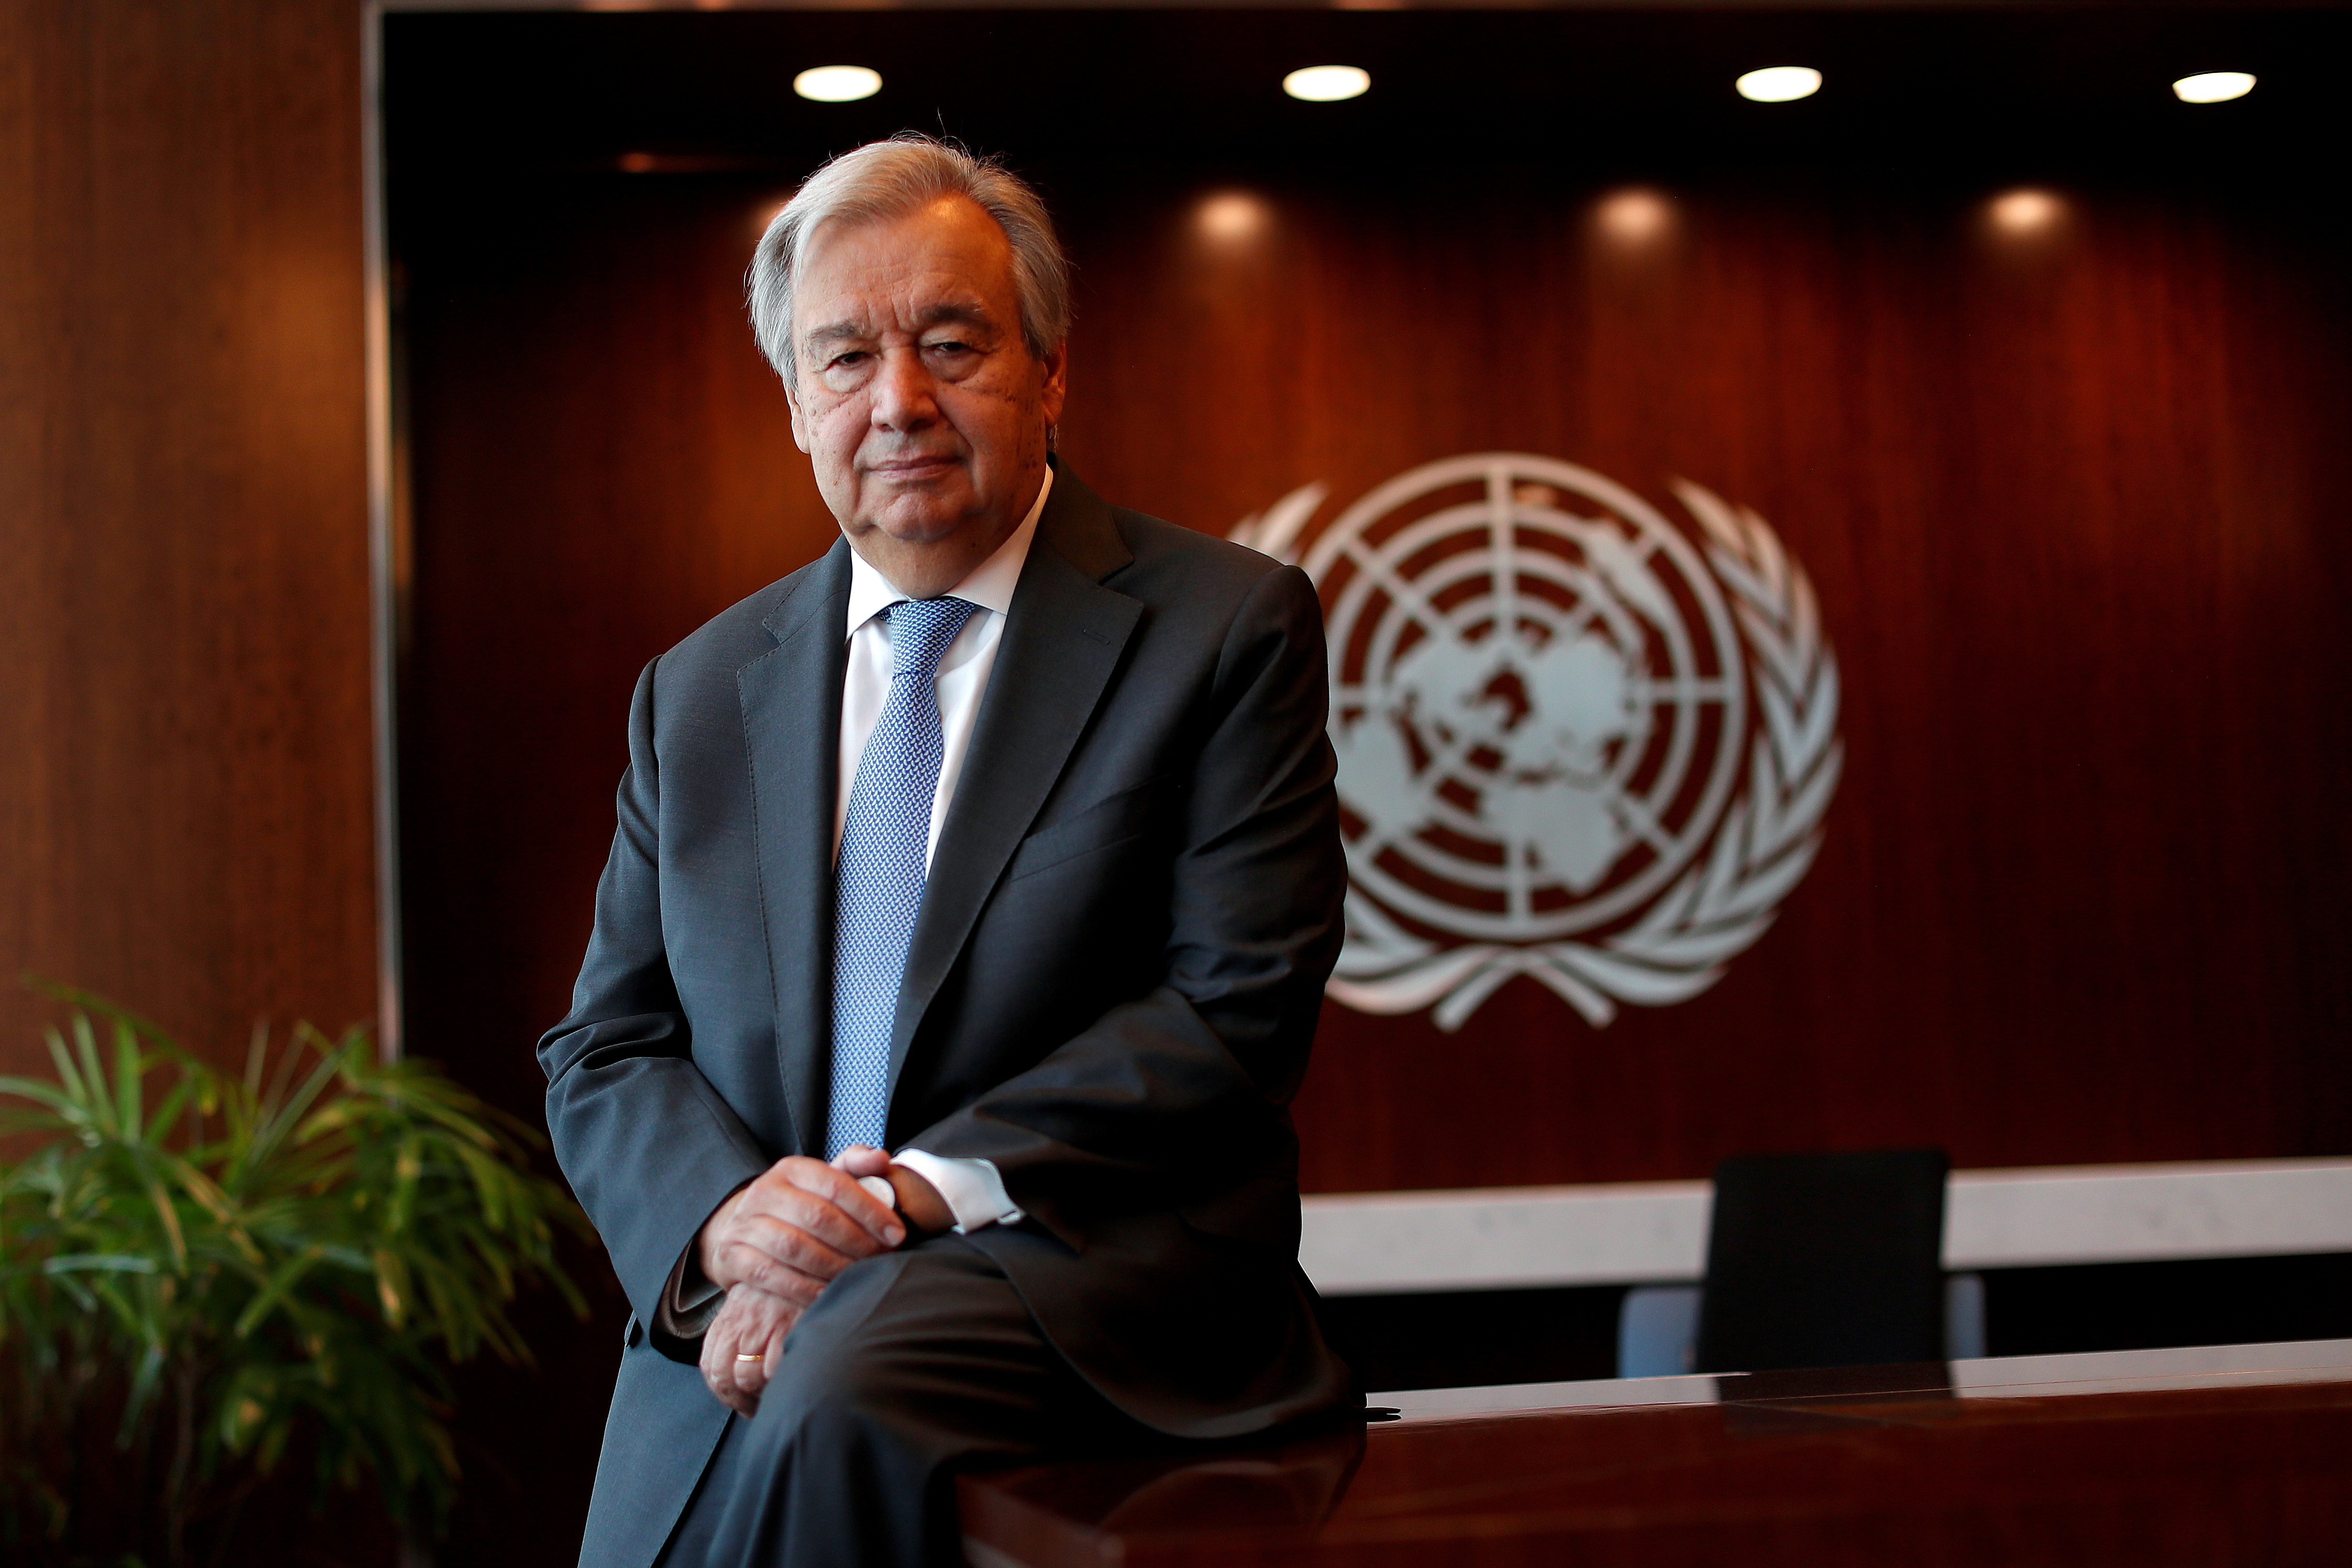 United Nations Secretary-General Antonio Guterres poses for a photograph during an interview with Reuters at U.N. headquarters in New York City, New York, U.S., September 14, 2020. REUTERS/Mike Segar/File Photo